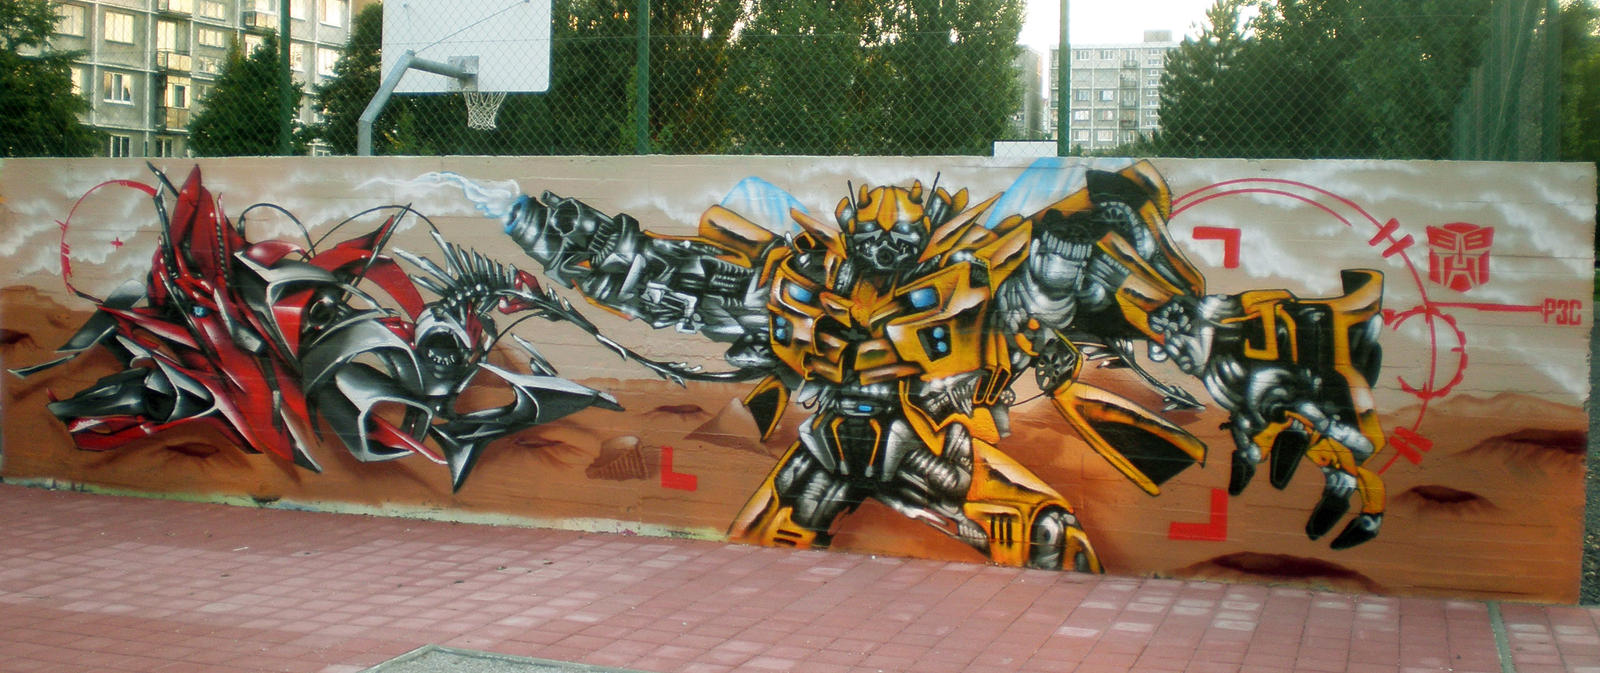 autobots by ewil33